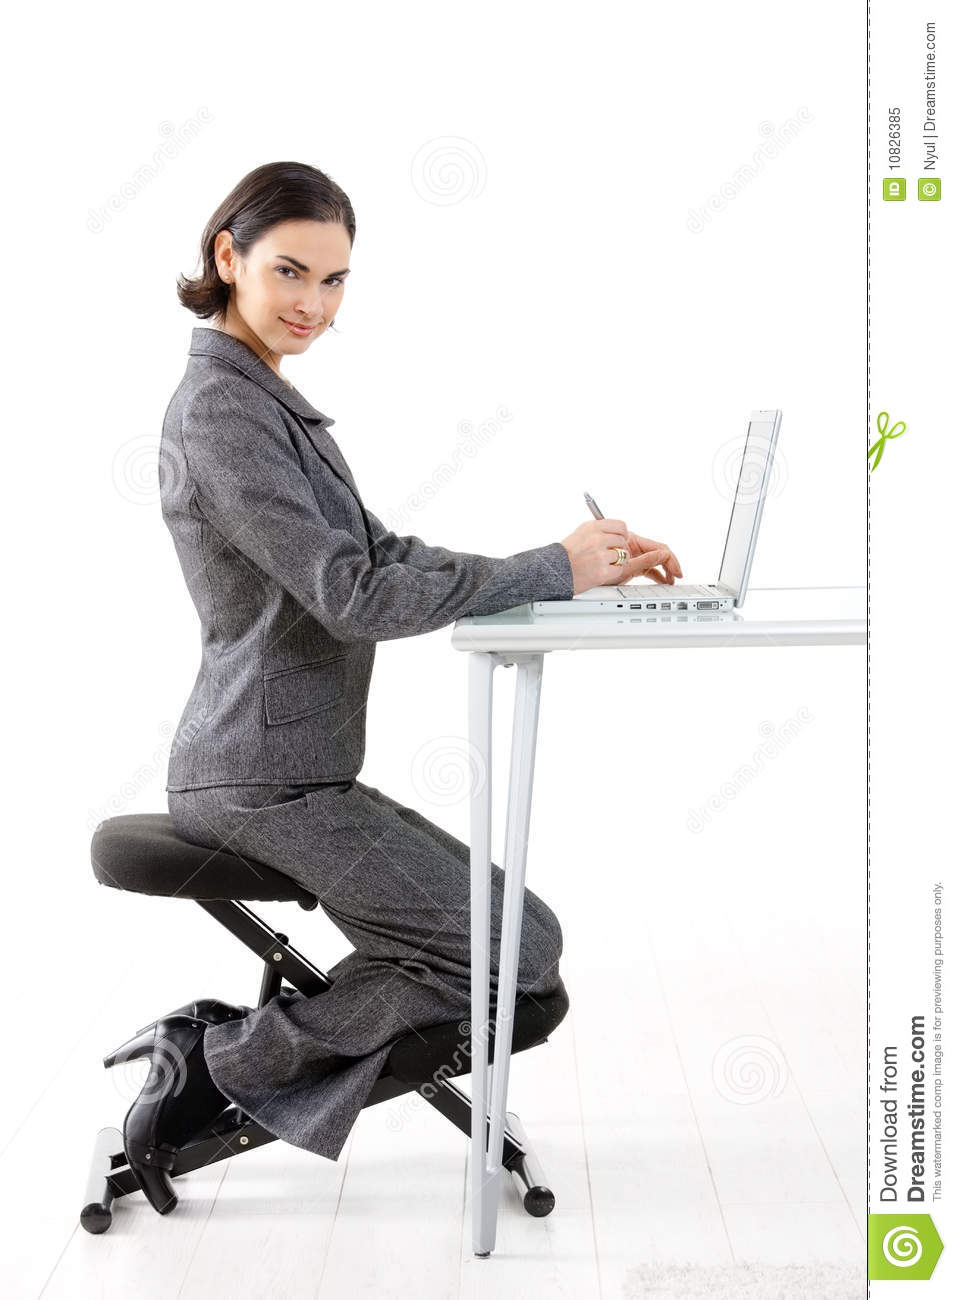 office max chair wheelchair clearance kneeling stock image. image of beautiful, expression - 10826385